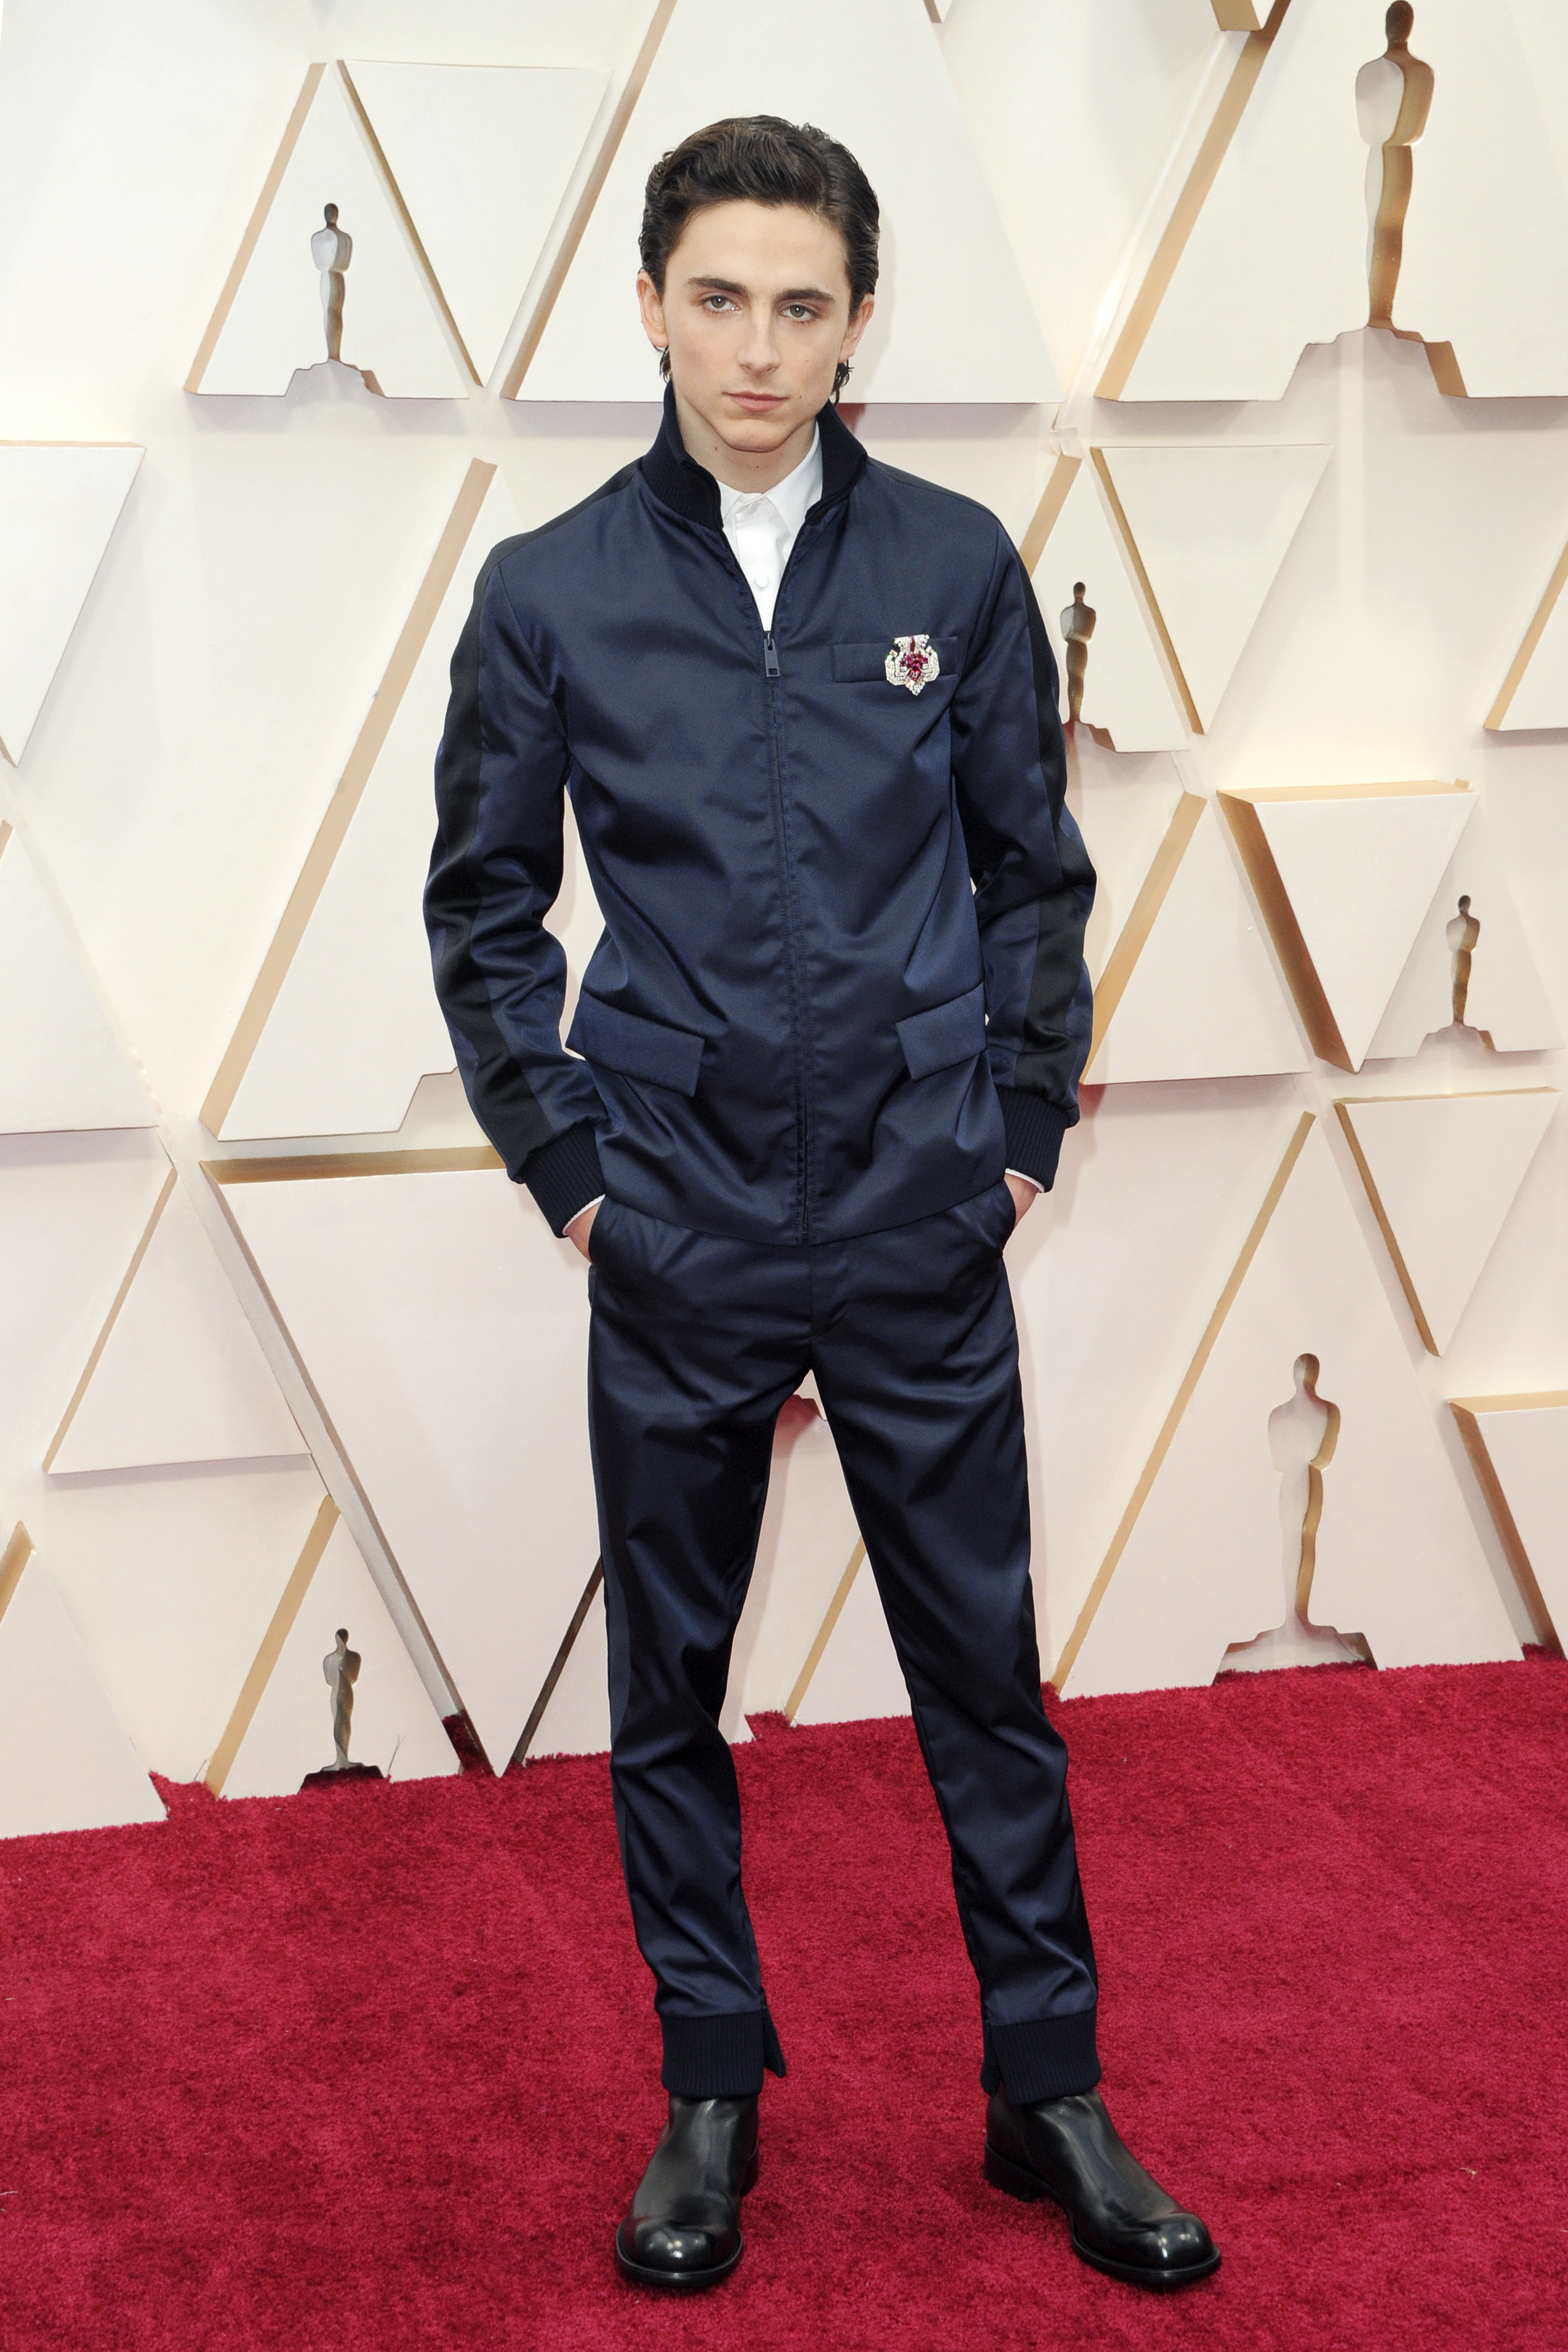 Timothée wears a navy nylon zip-up jacket and matching pants